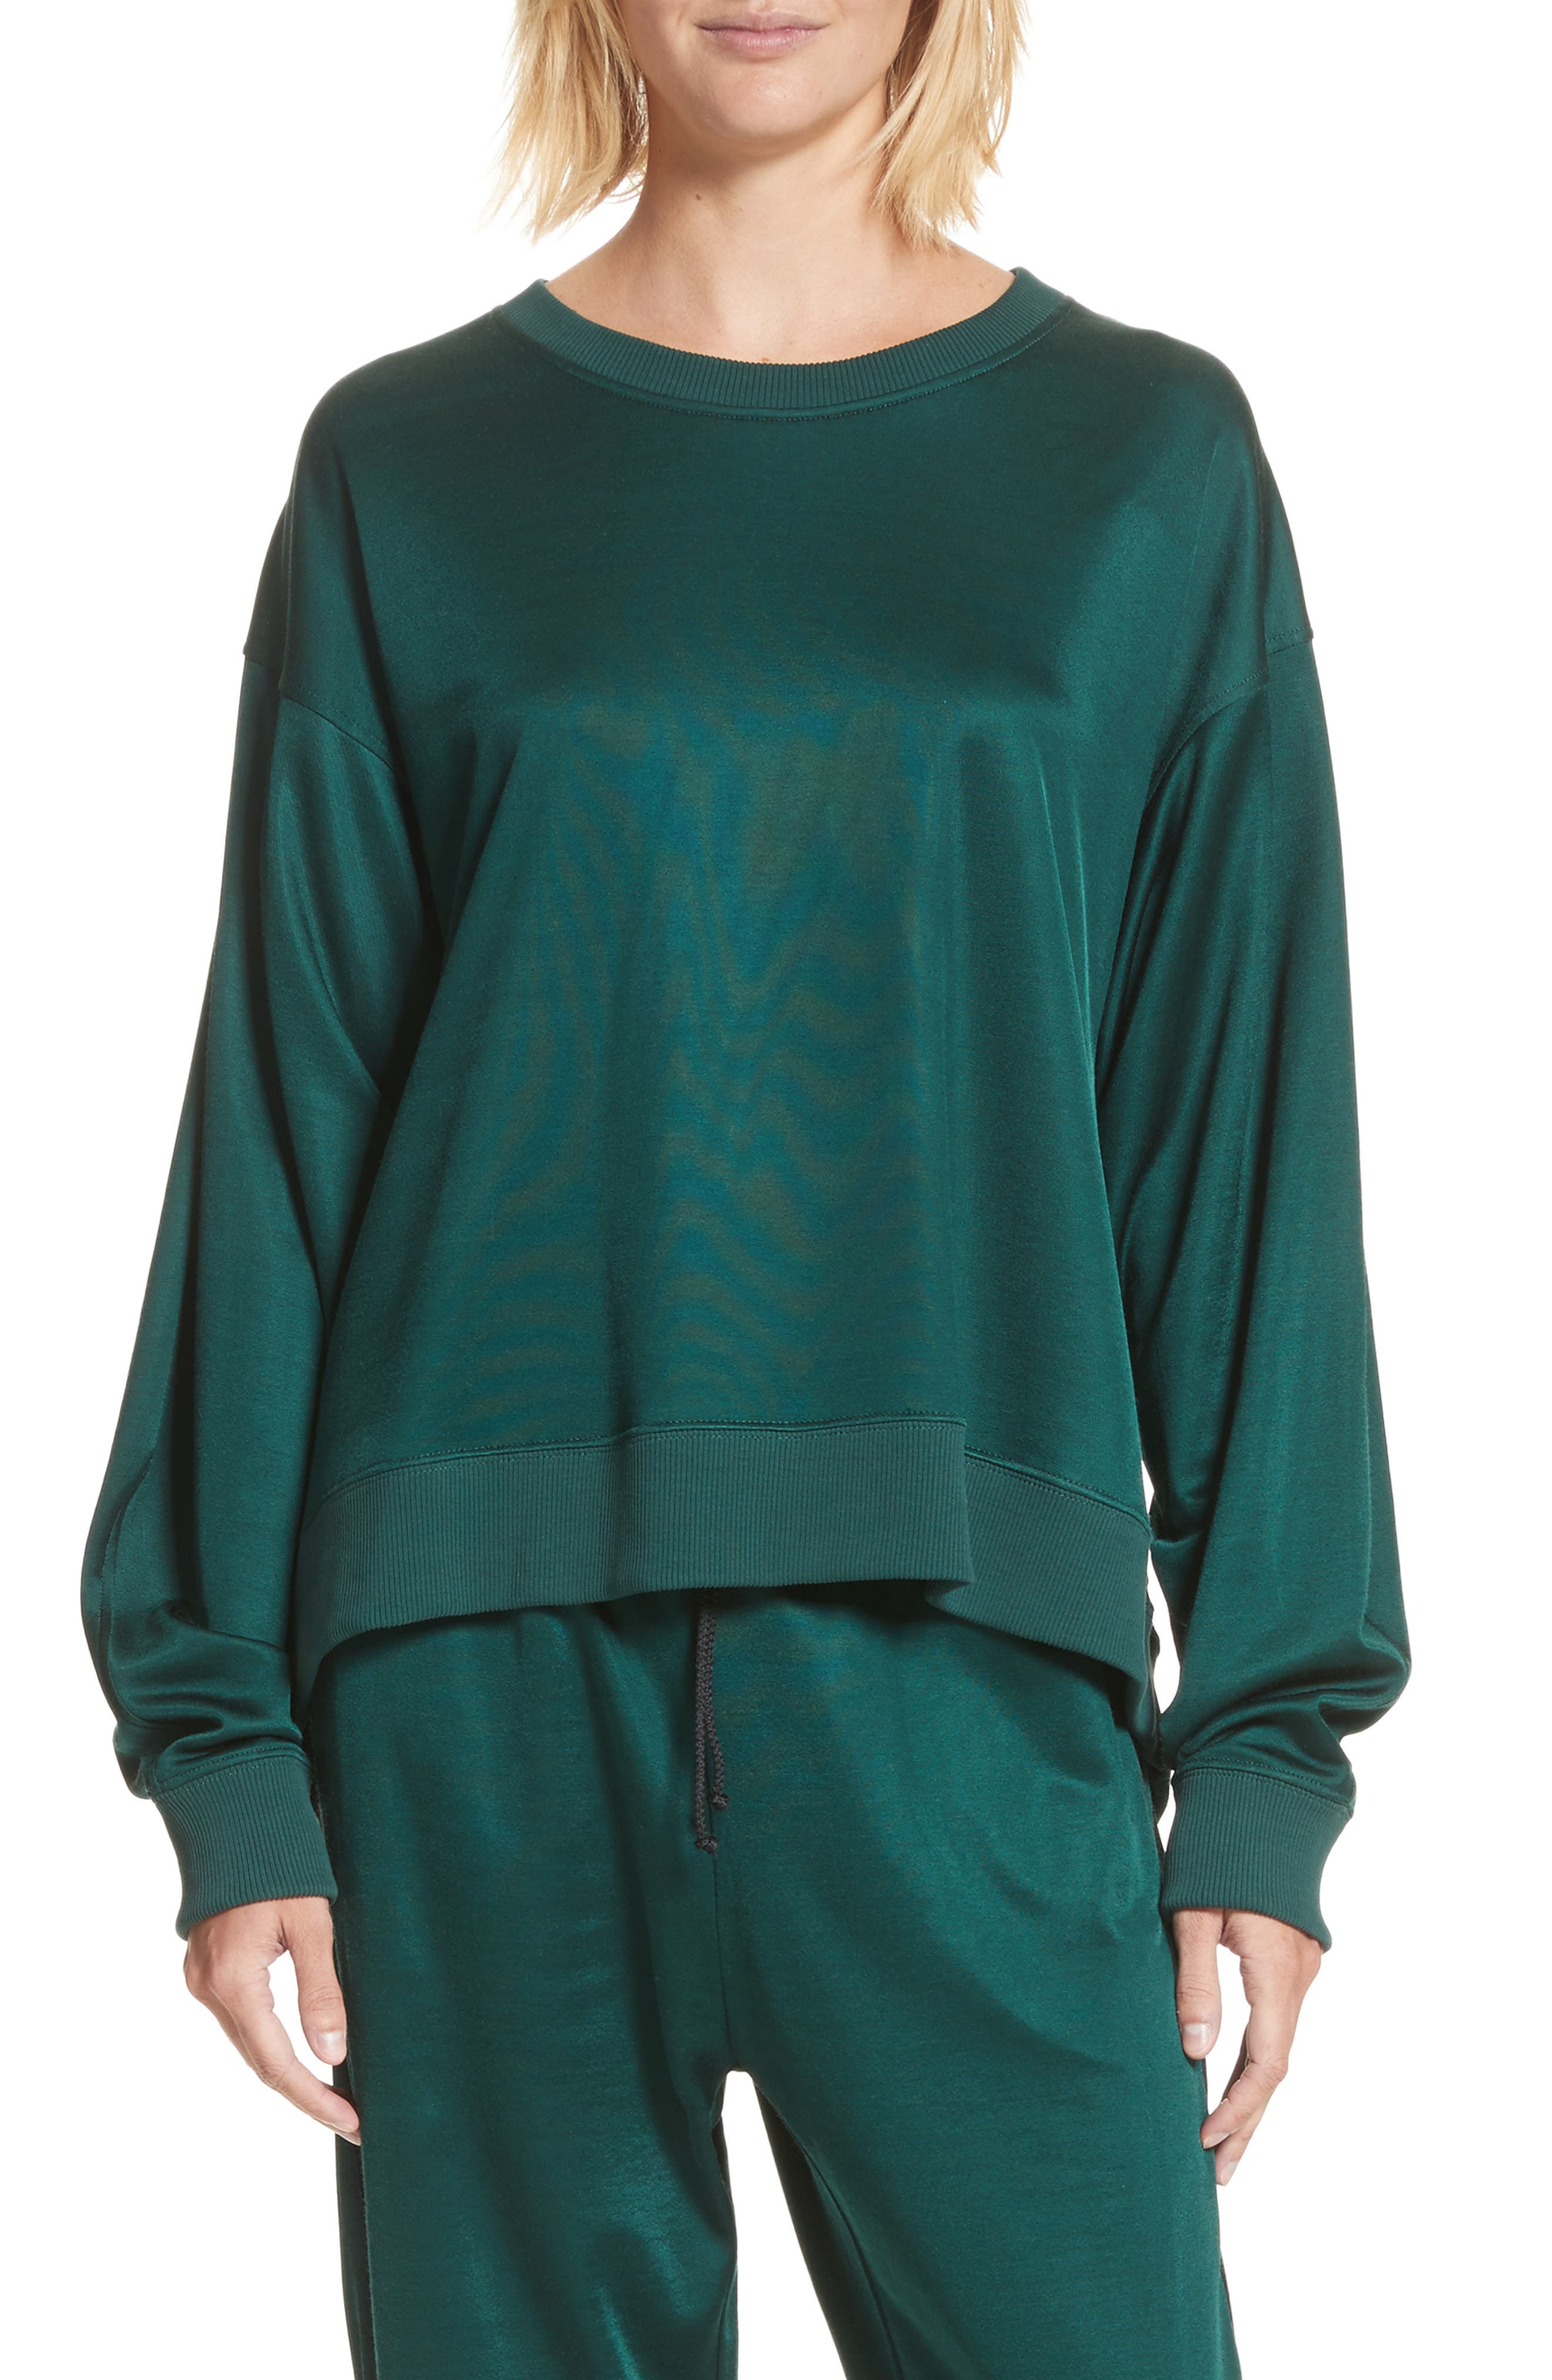 Track Suit Pullover,                         Main,                         color, 304